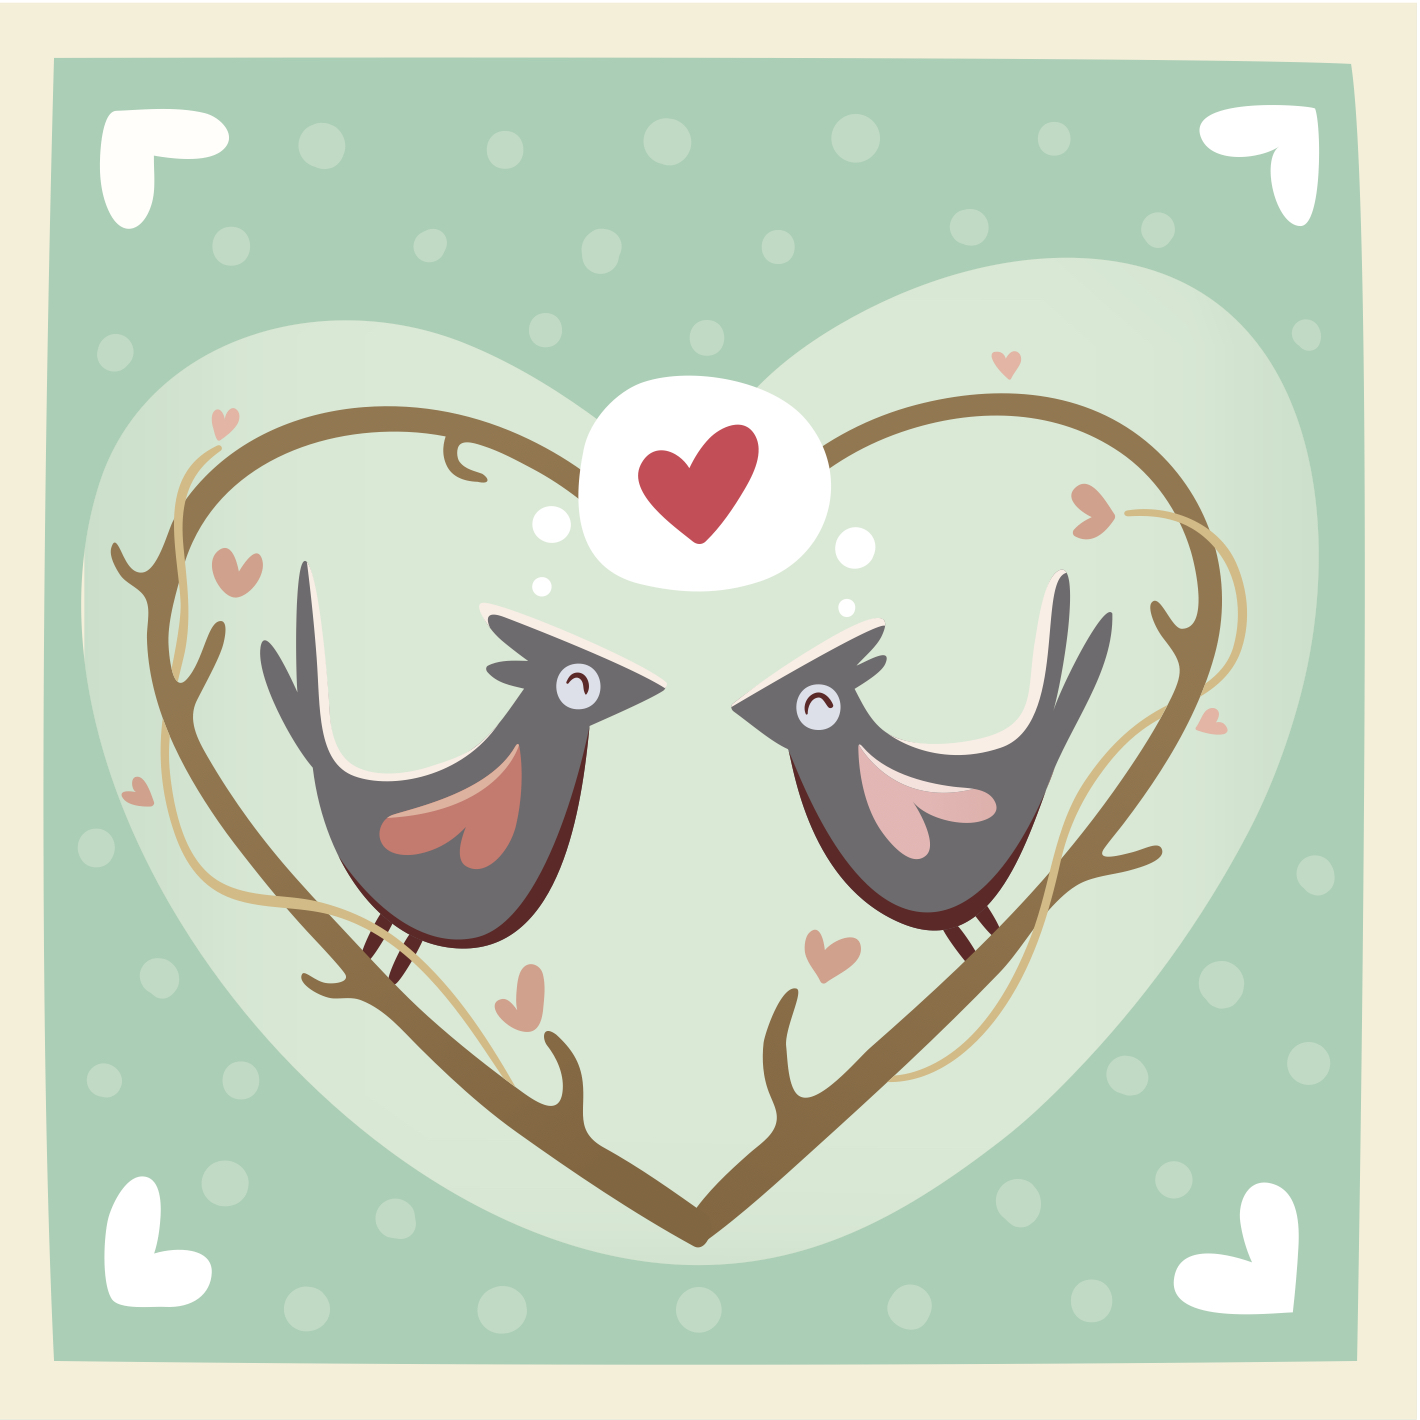 Happy Valentine's Day eCard with cartoon birds dreaming of a red heart